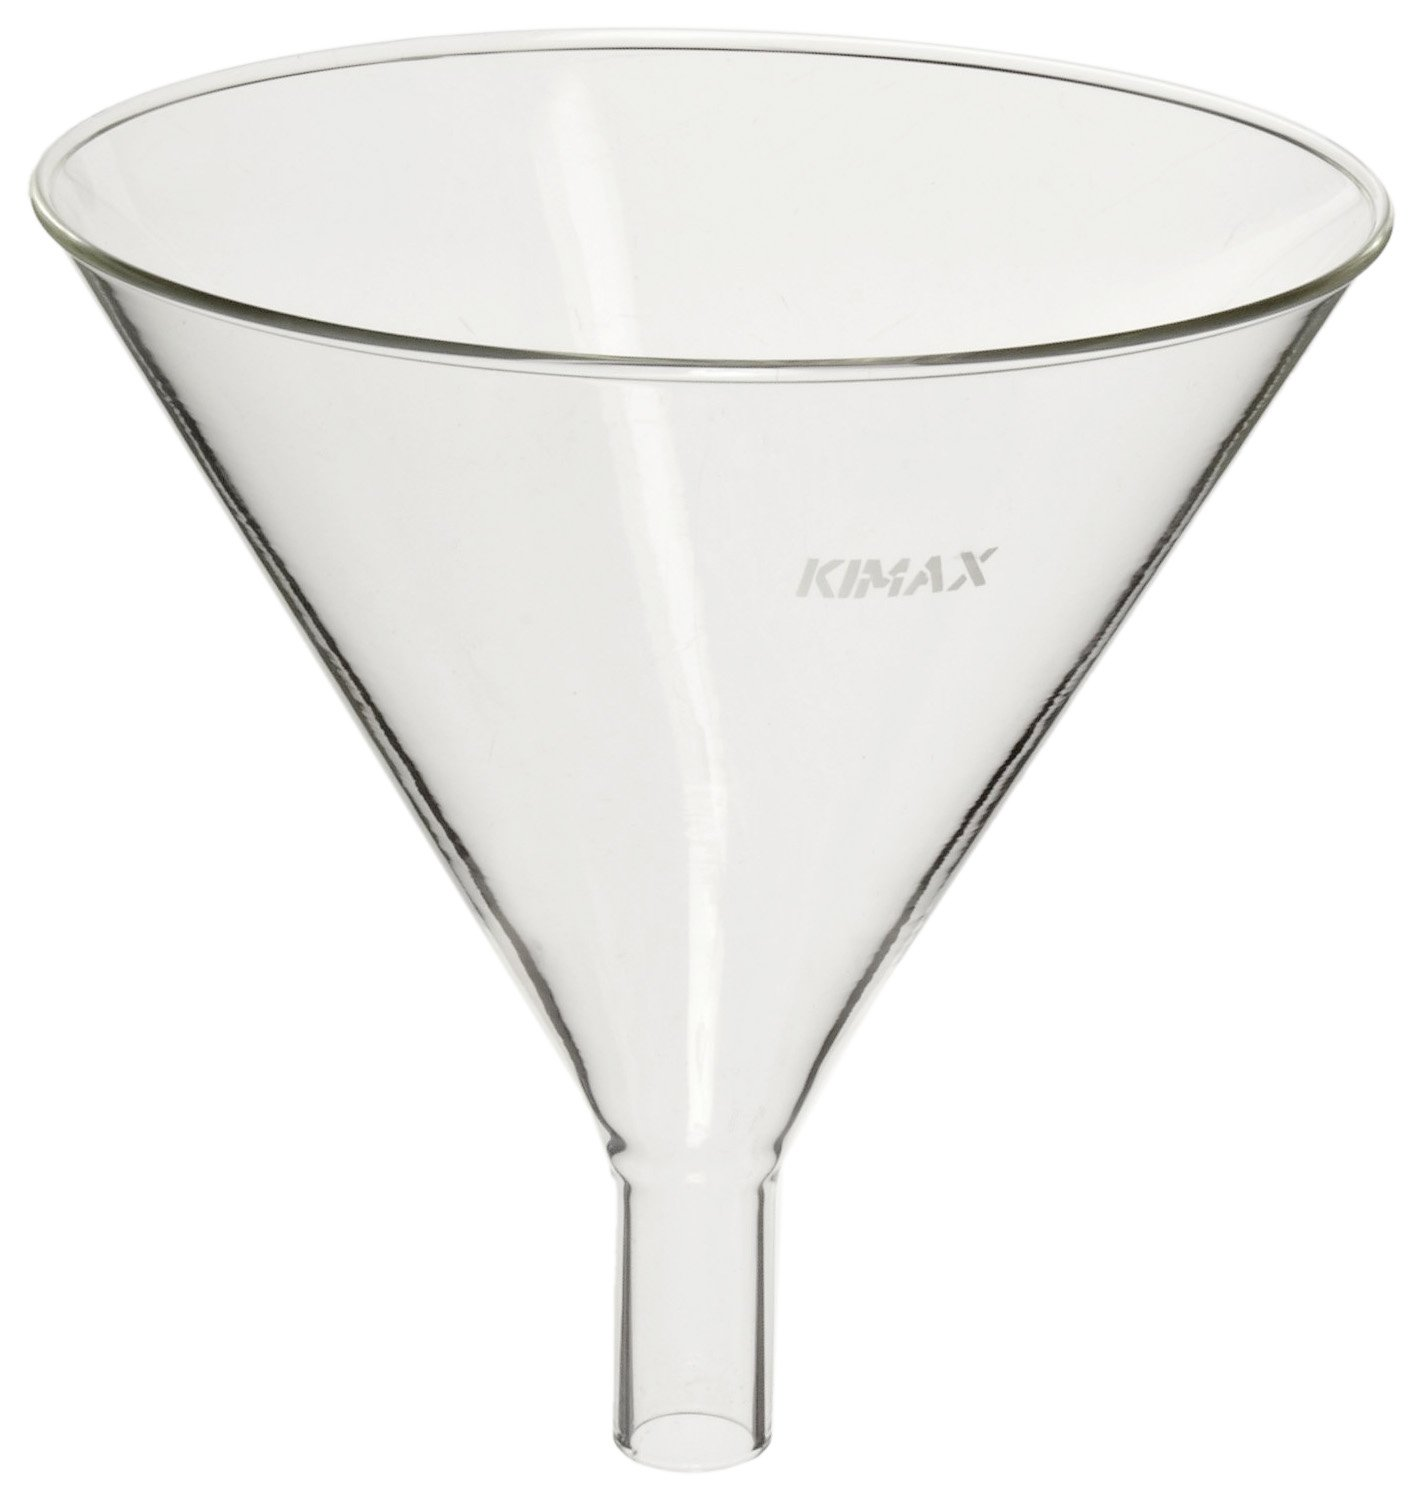 Kimble 29020-80 Glass Round Powder Filling Funnel, with 1.5'' Stem, 80mm Diameter, (Pack of 6) by Kimble